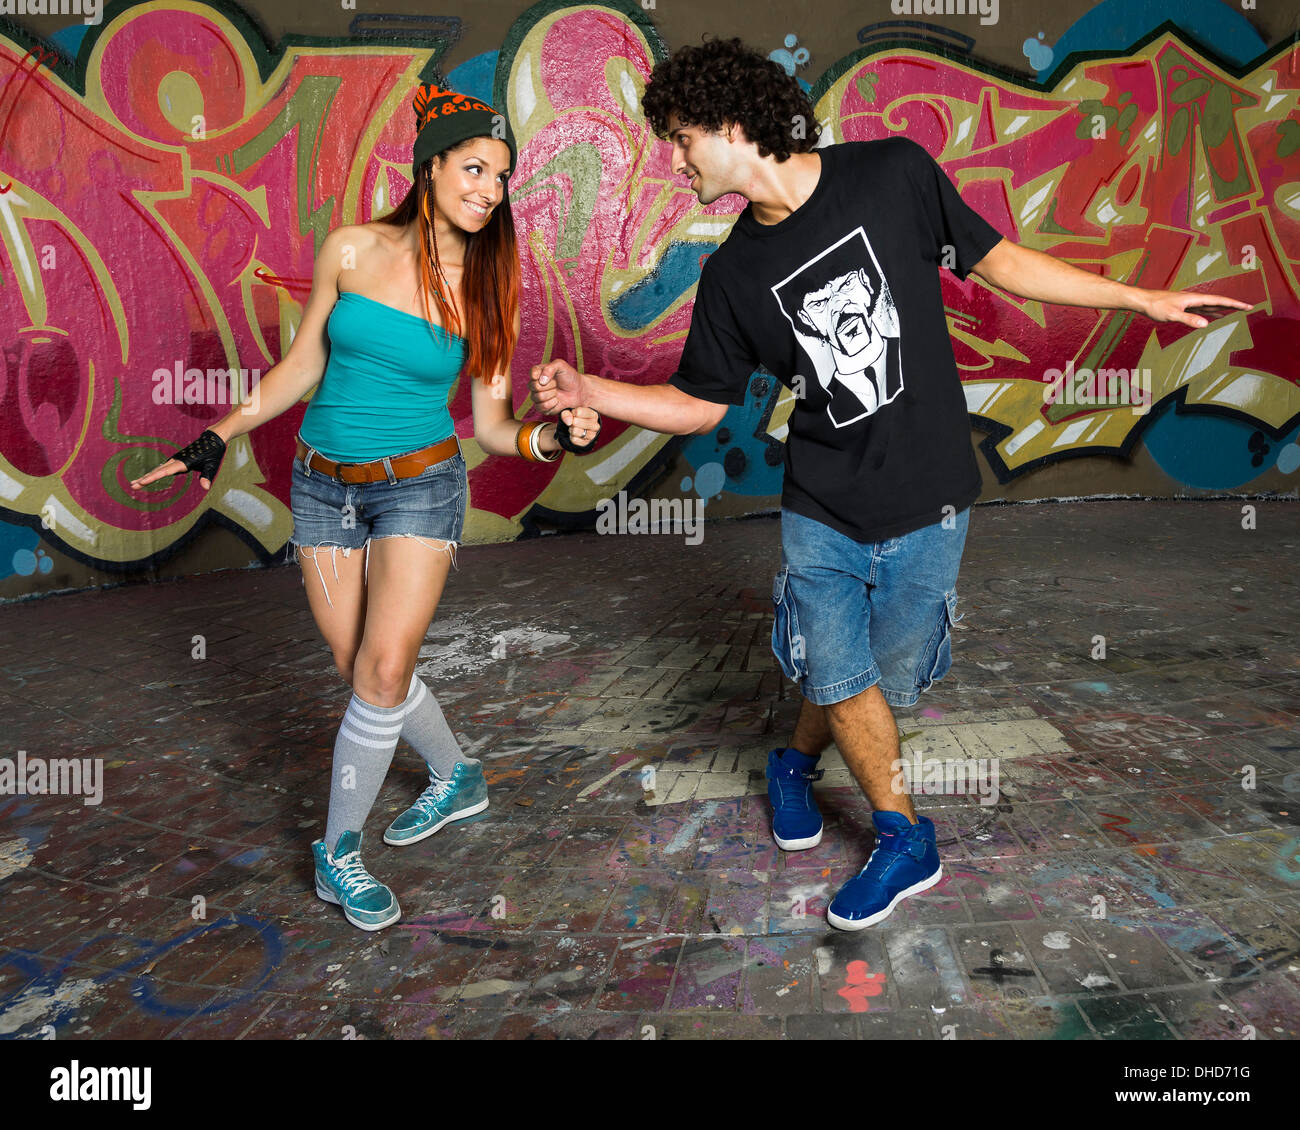 Germany, Stuttgart, Hall of Fame, Two Hip Hop dancers at airbrush wall Stock Photo